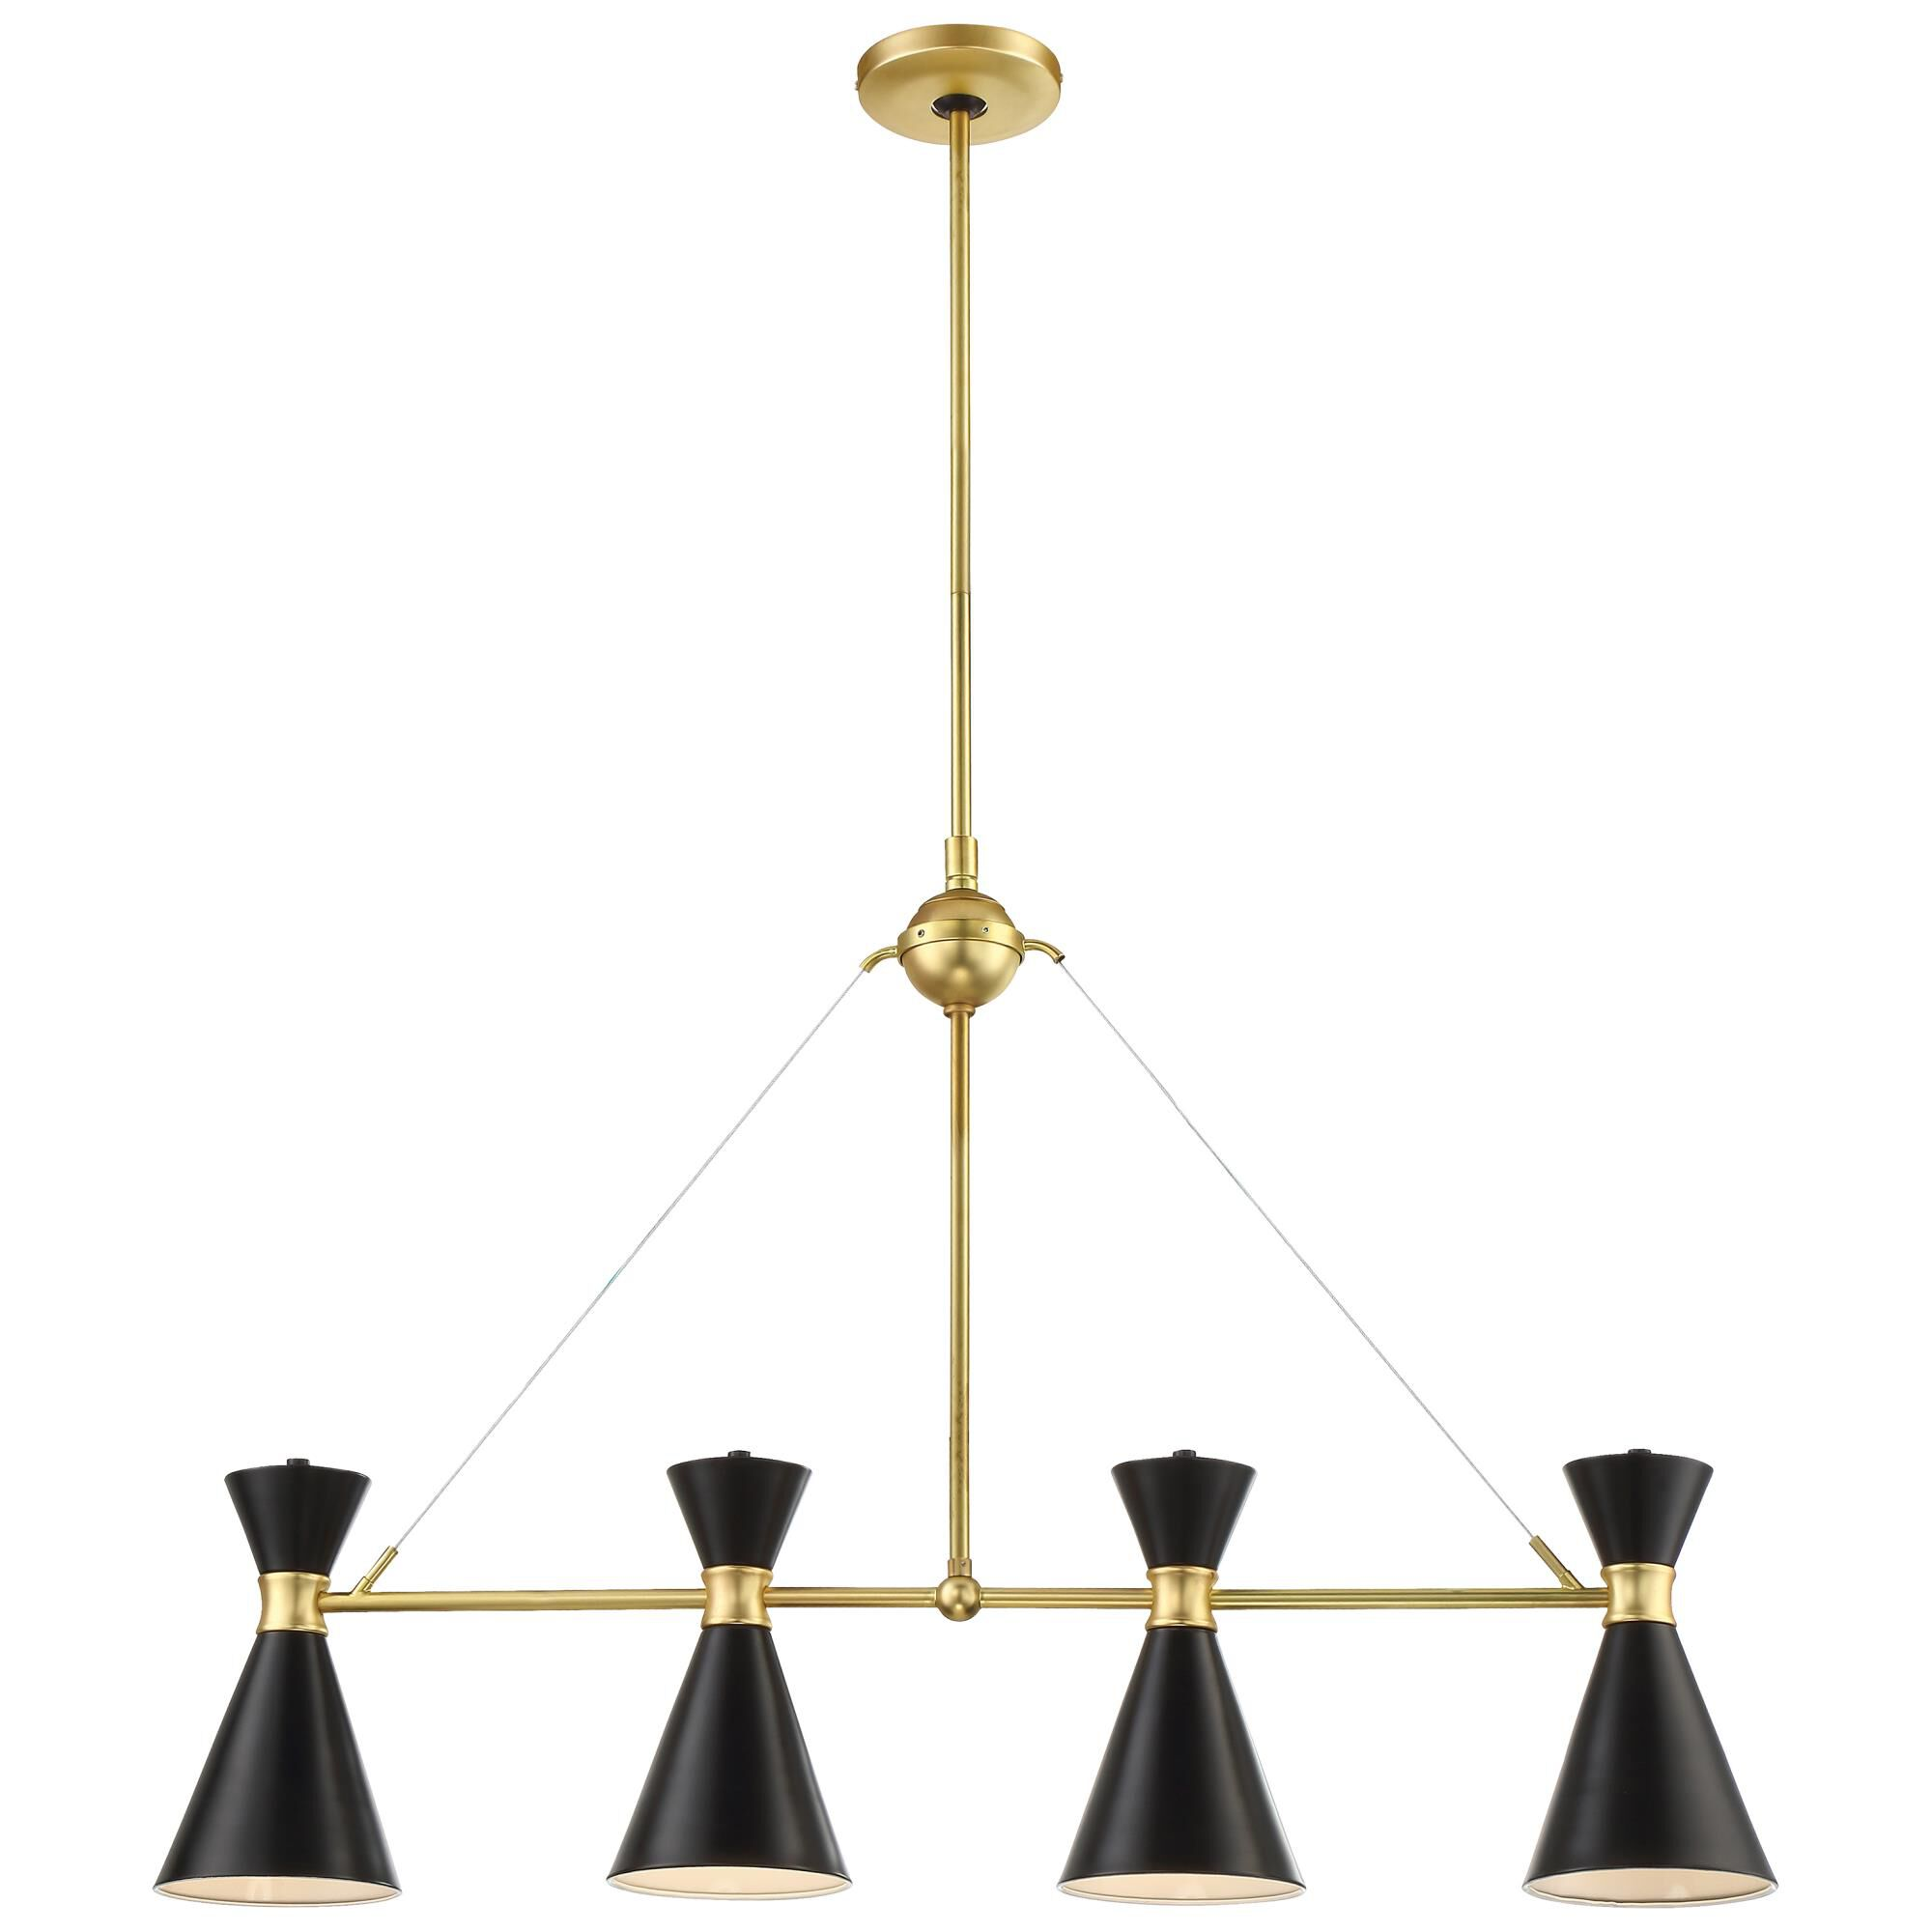 Kovacs Conic 35 Inch 4 Light Linear Suspension Light Conic - P1824-248 - Transitional